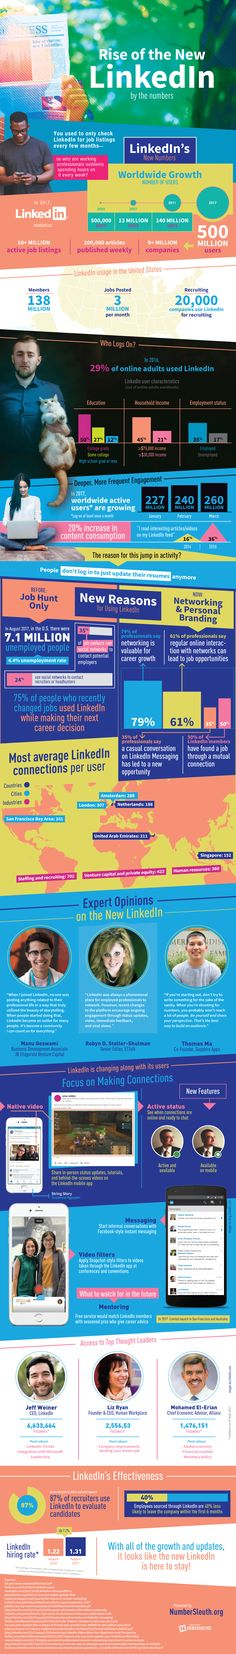 The Rise of the New LinkedIn